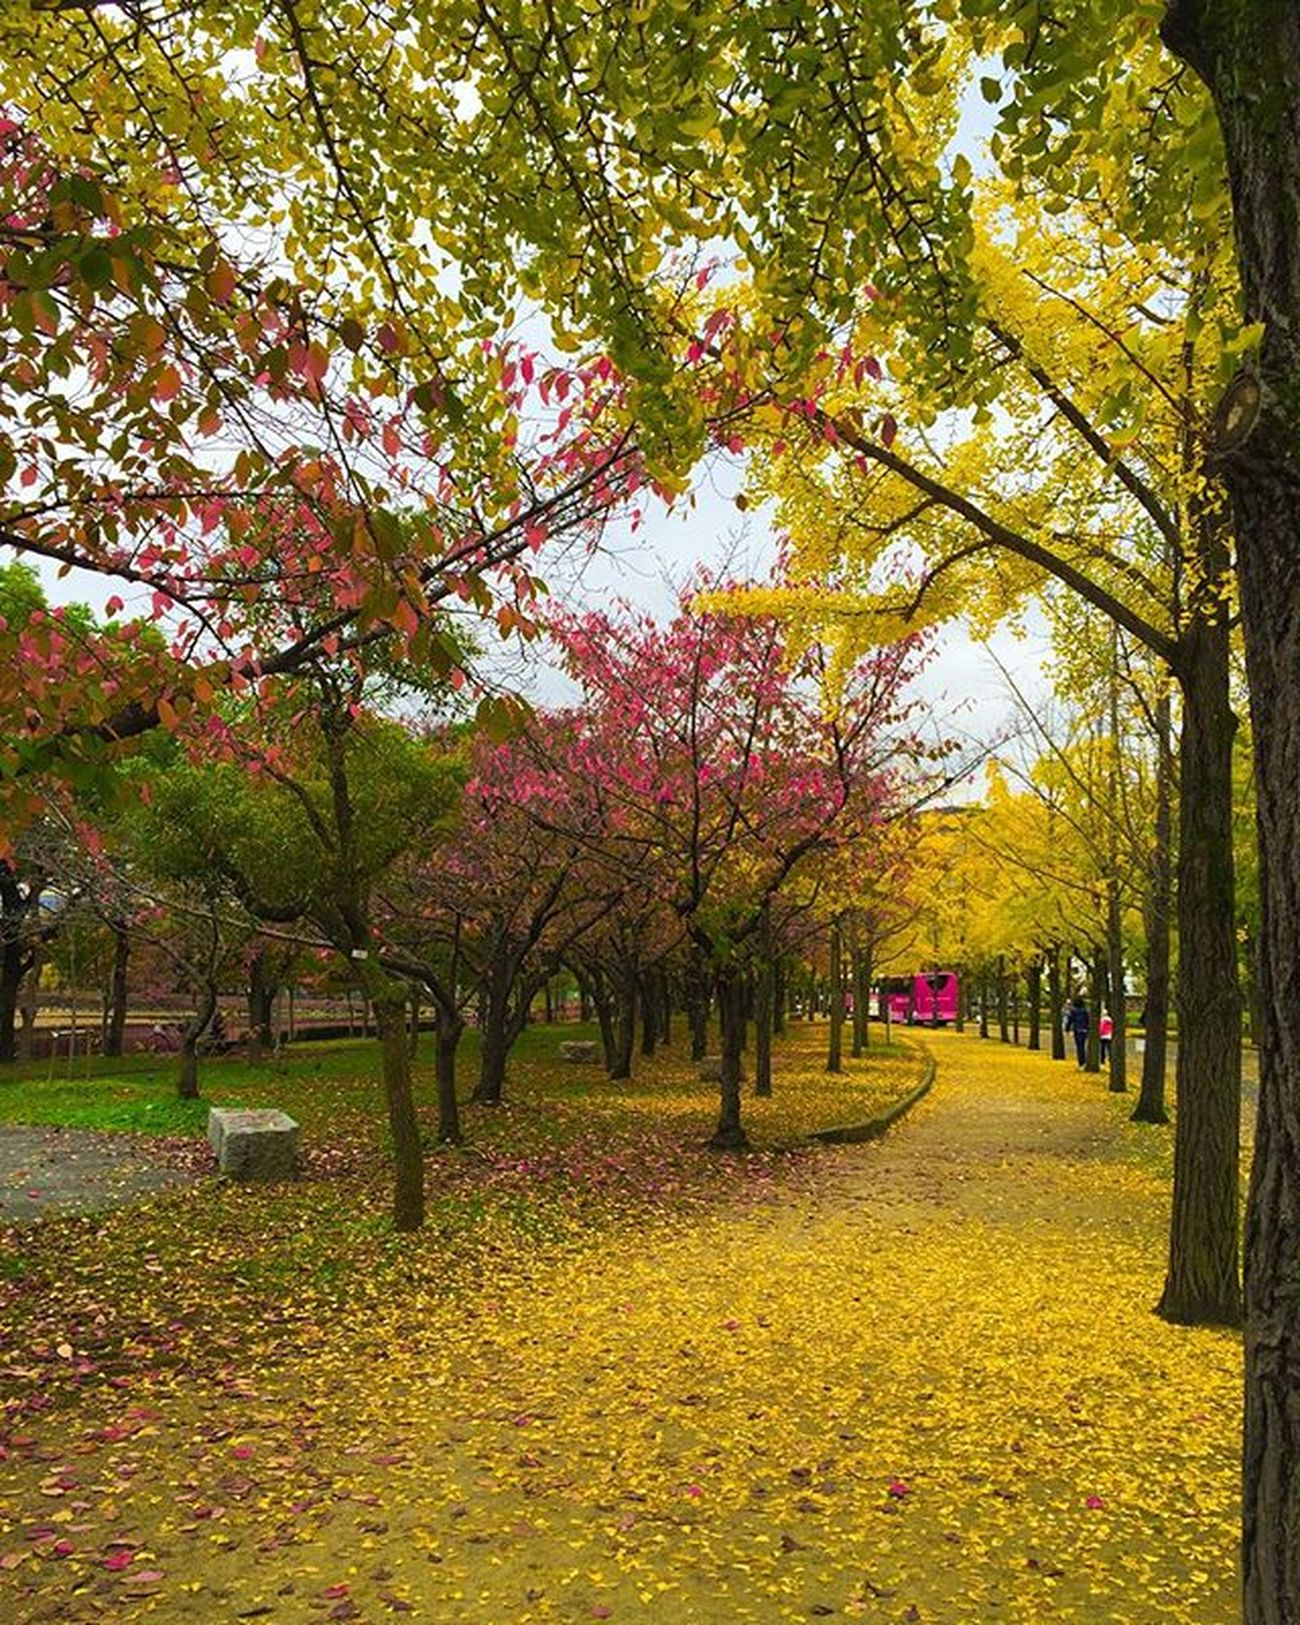 🍁🍂💛💛💛🍁🍂 At the park around Osaka Castle ... feasting my eyes on the beautiful colors of autumn . Have a lovely day my friends 😘💛😘 Garden Autumn Awesome_japan All_shots Landscape Landscape_lovers Landscape_captures Landscapestyles_gf Landscapes Vscocam VSCO Phototag_it Photooftheday Master_pics Master_shot Ig_sharepoint Ig_world Igs_today Instagood Instamood Globalcapture Insta_worldz Travel Holiday Nature naturelover rsa_nature jp_views worldbestgram instagram